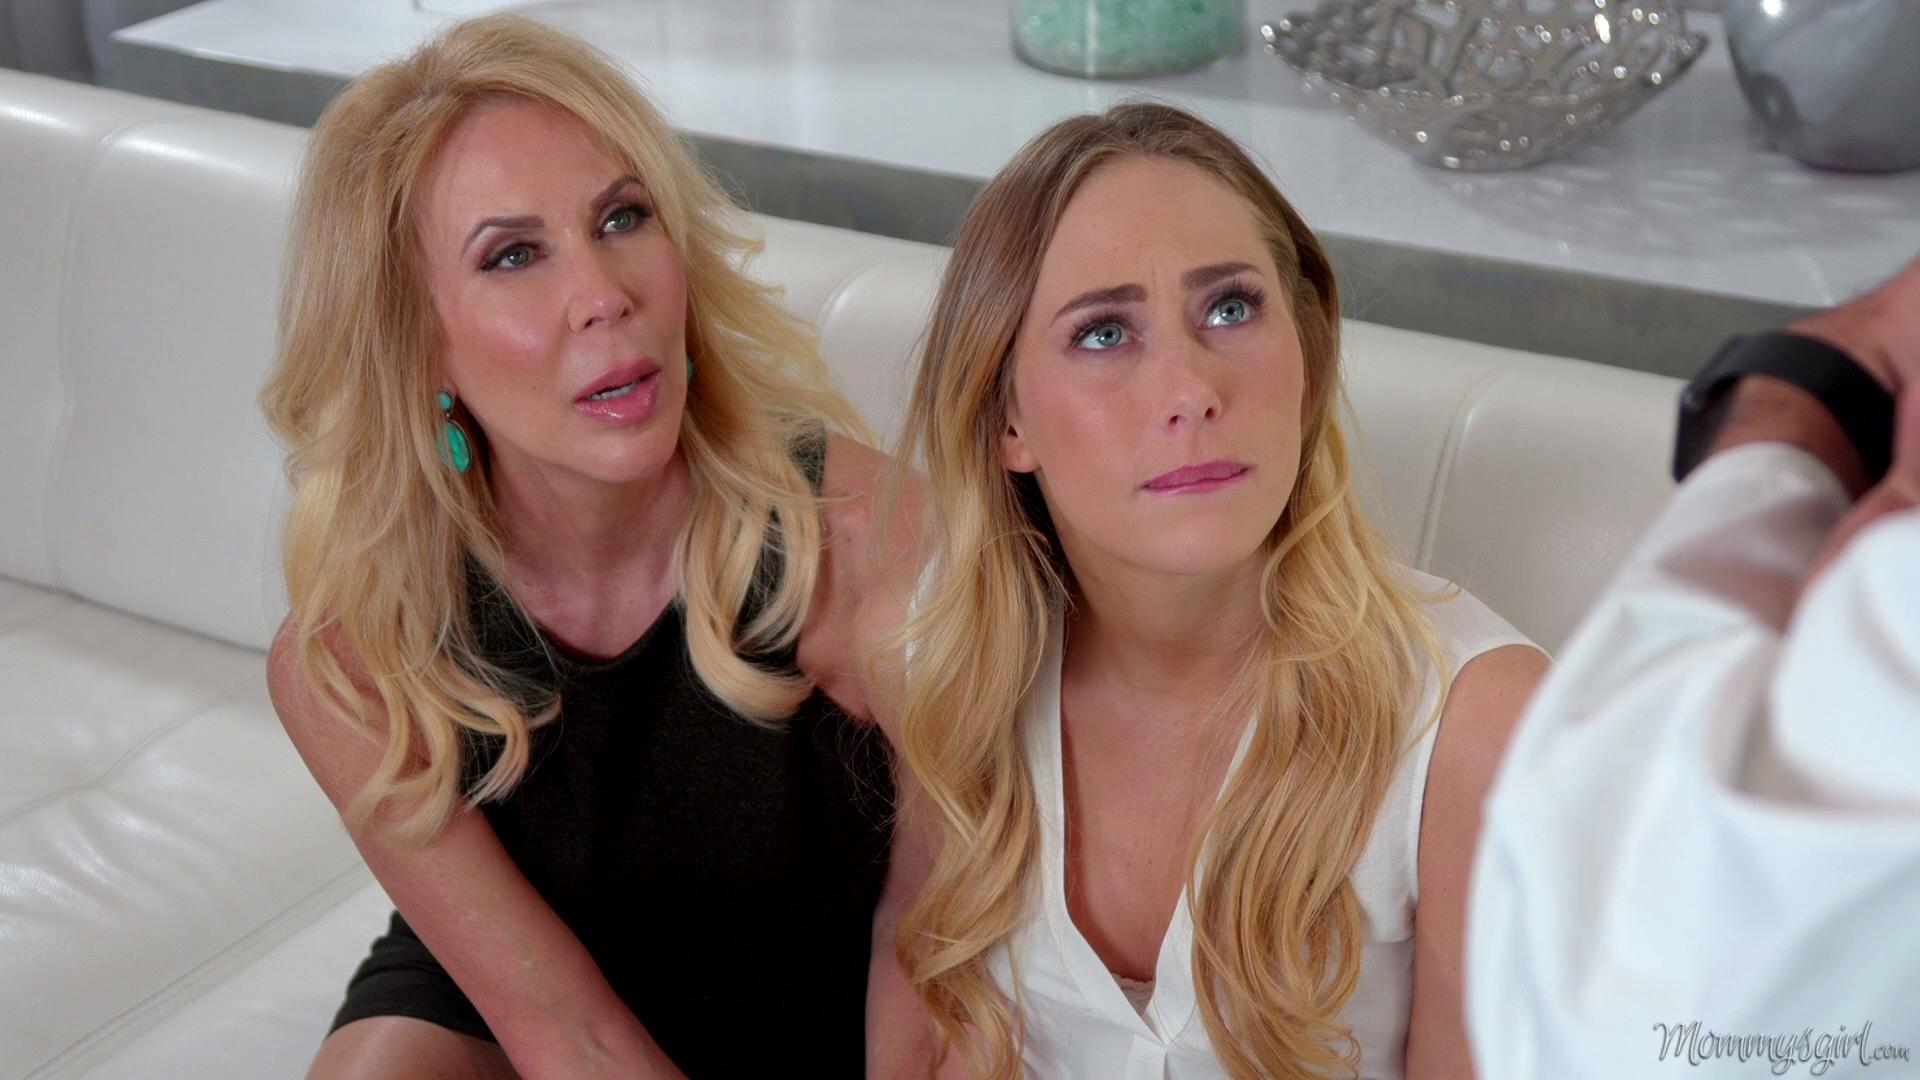 MommysGirl – Carter Cruise And Erica Lauren Waiting Is The Hardest